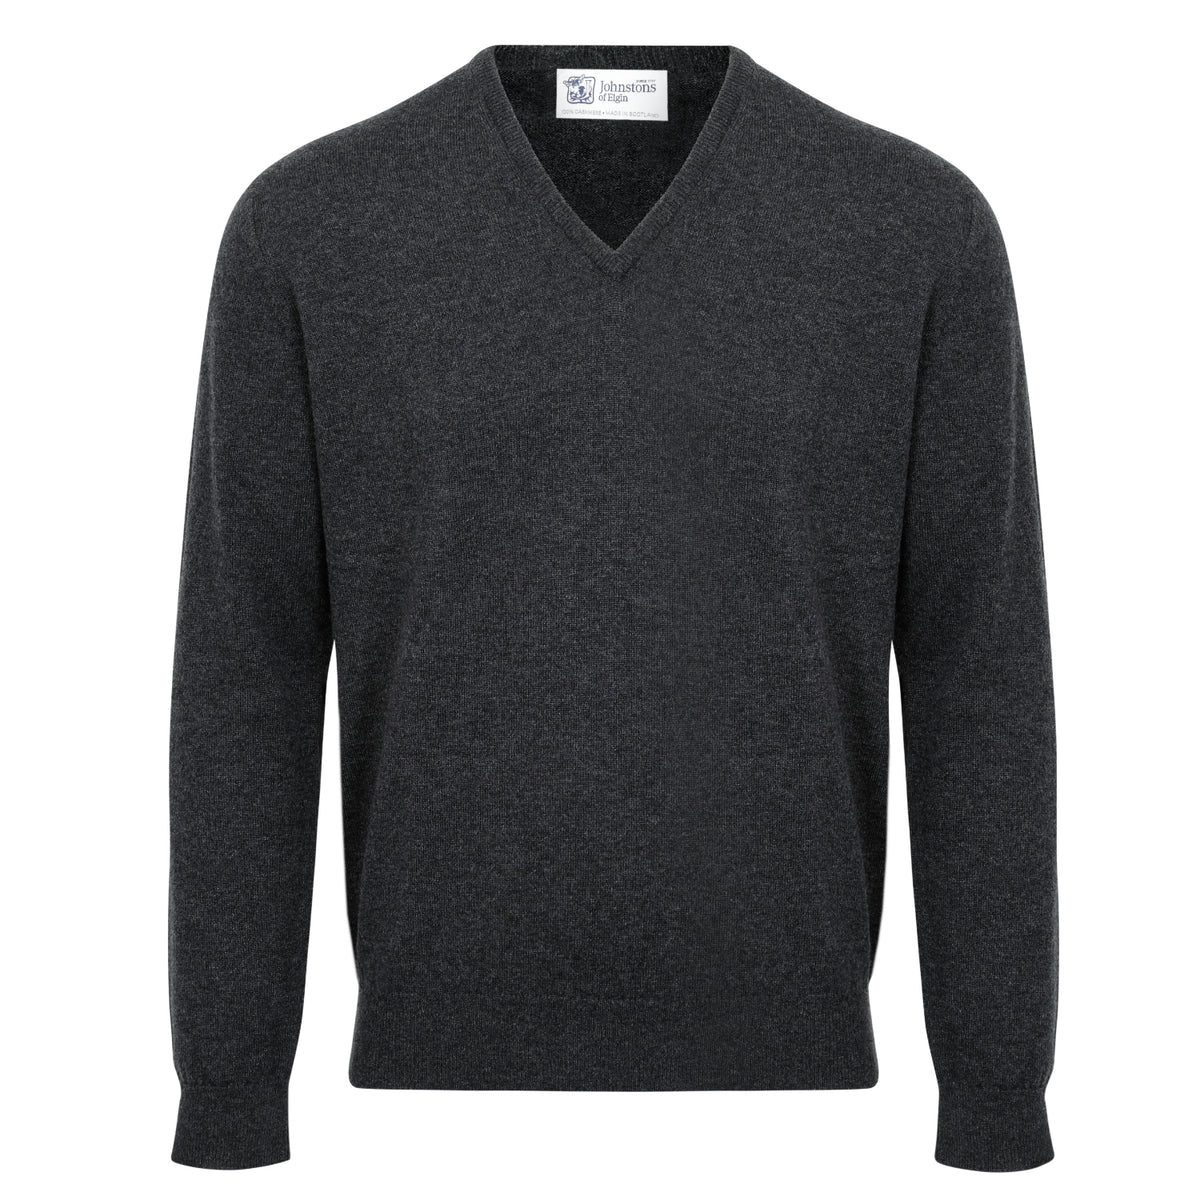 Johnstons of Elgin | Mens 2-Ply Cashmere V Neck | Charcoal Grey | Shop now at The Cashmere Choice | London